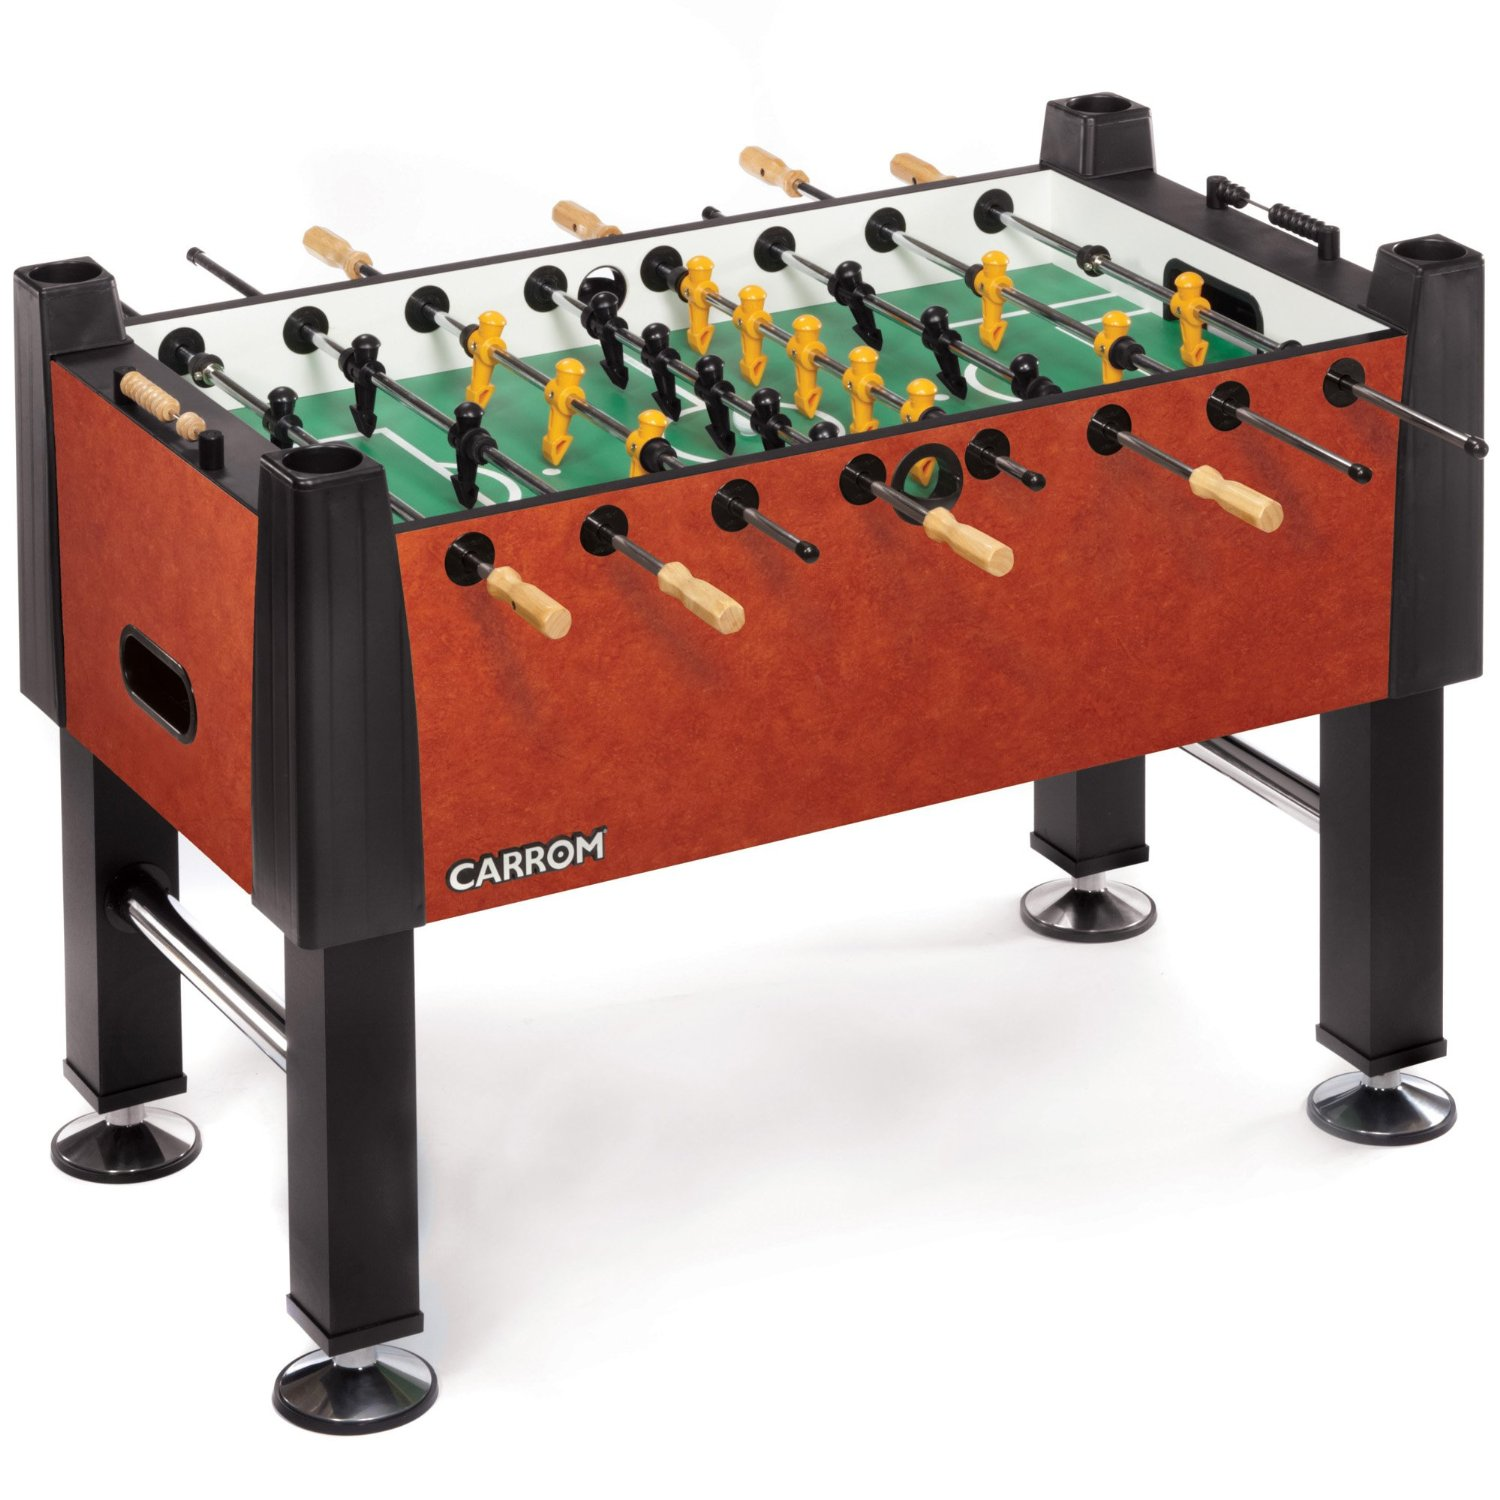 Carrom Signature Foosball Table Ref S Foosball Table Reviews